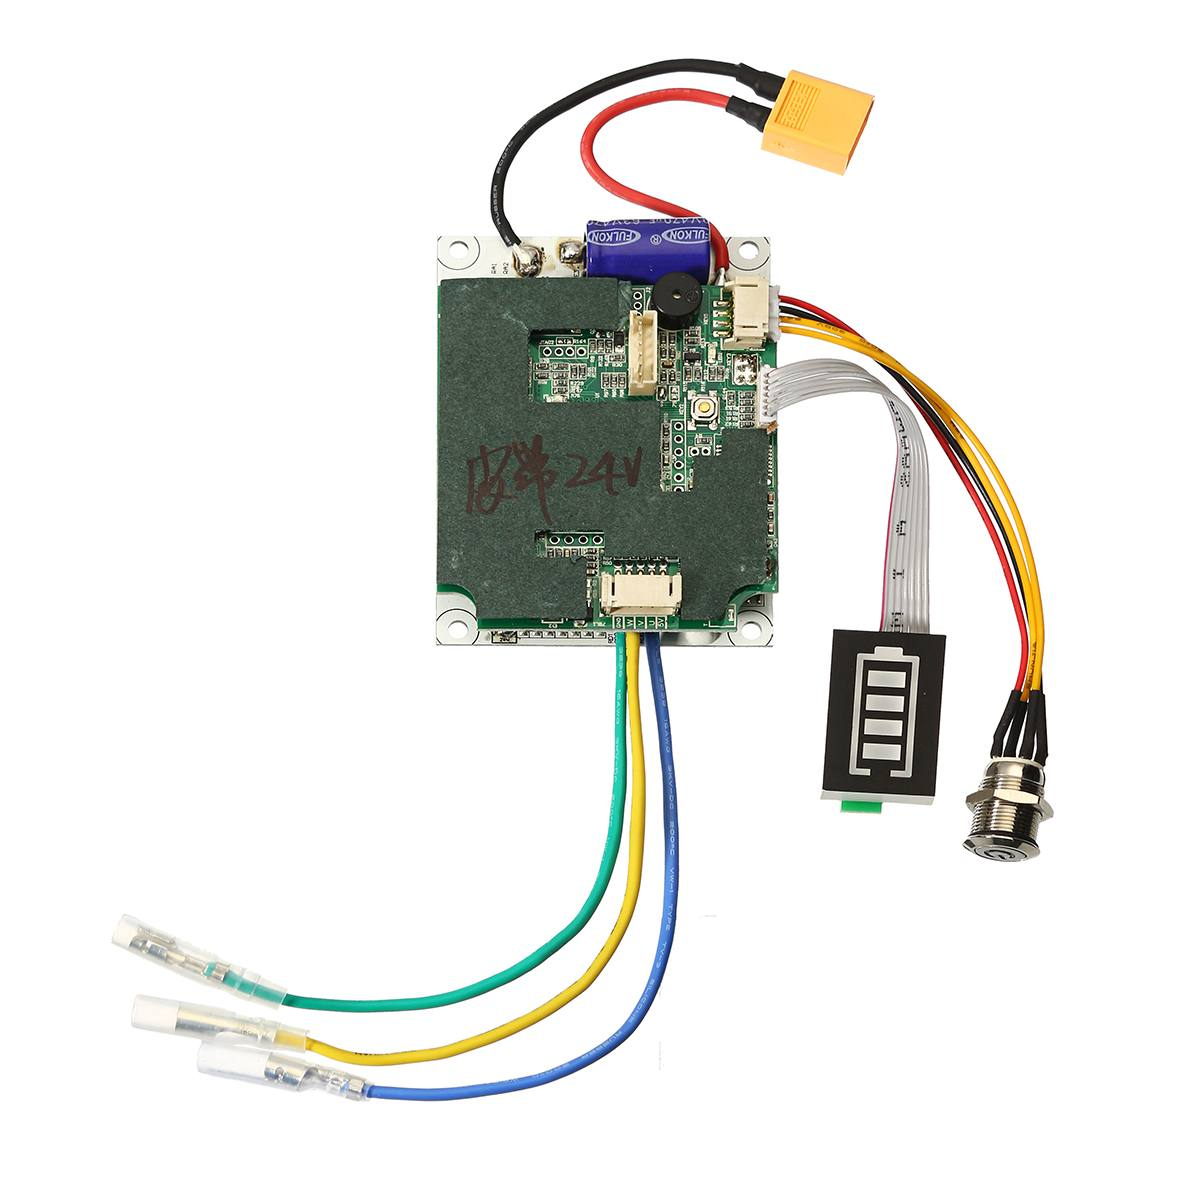 24/36V Single Belt Motor Electric Skateboard Controller Longboard ESC Substitute Parts Scooter Mainboard Instrument Tools 37